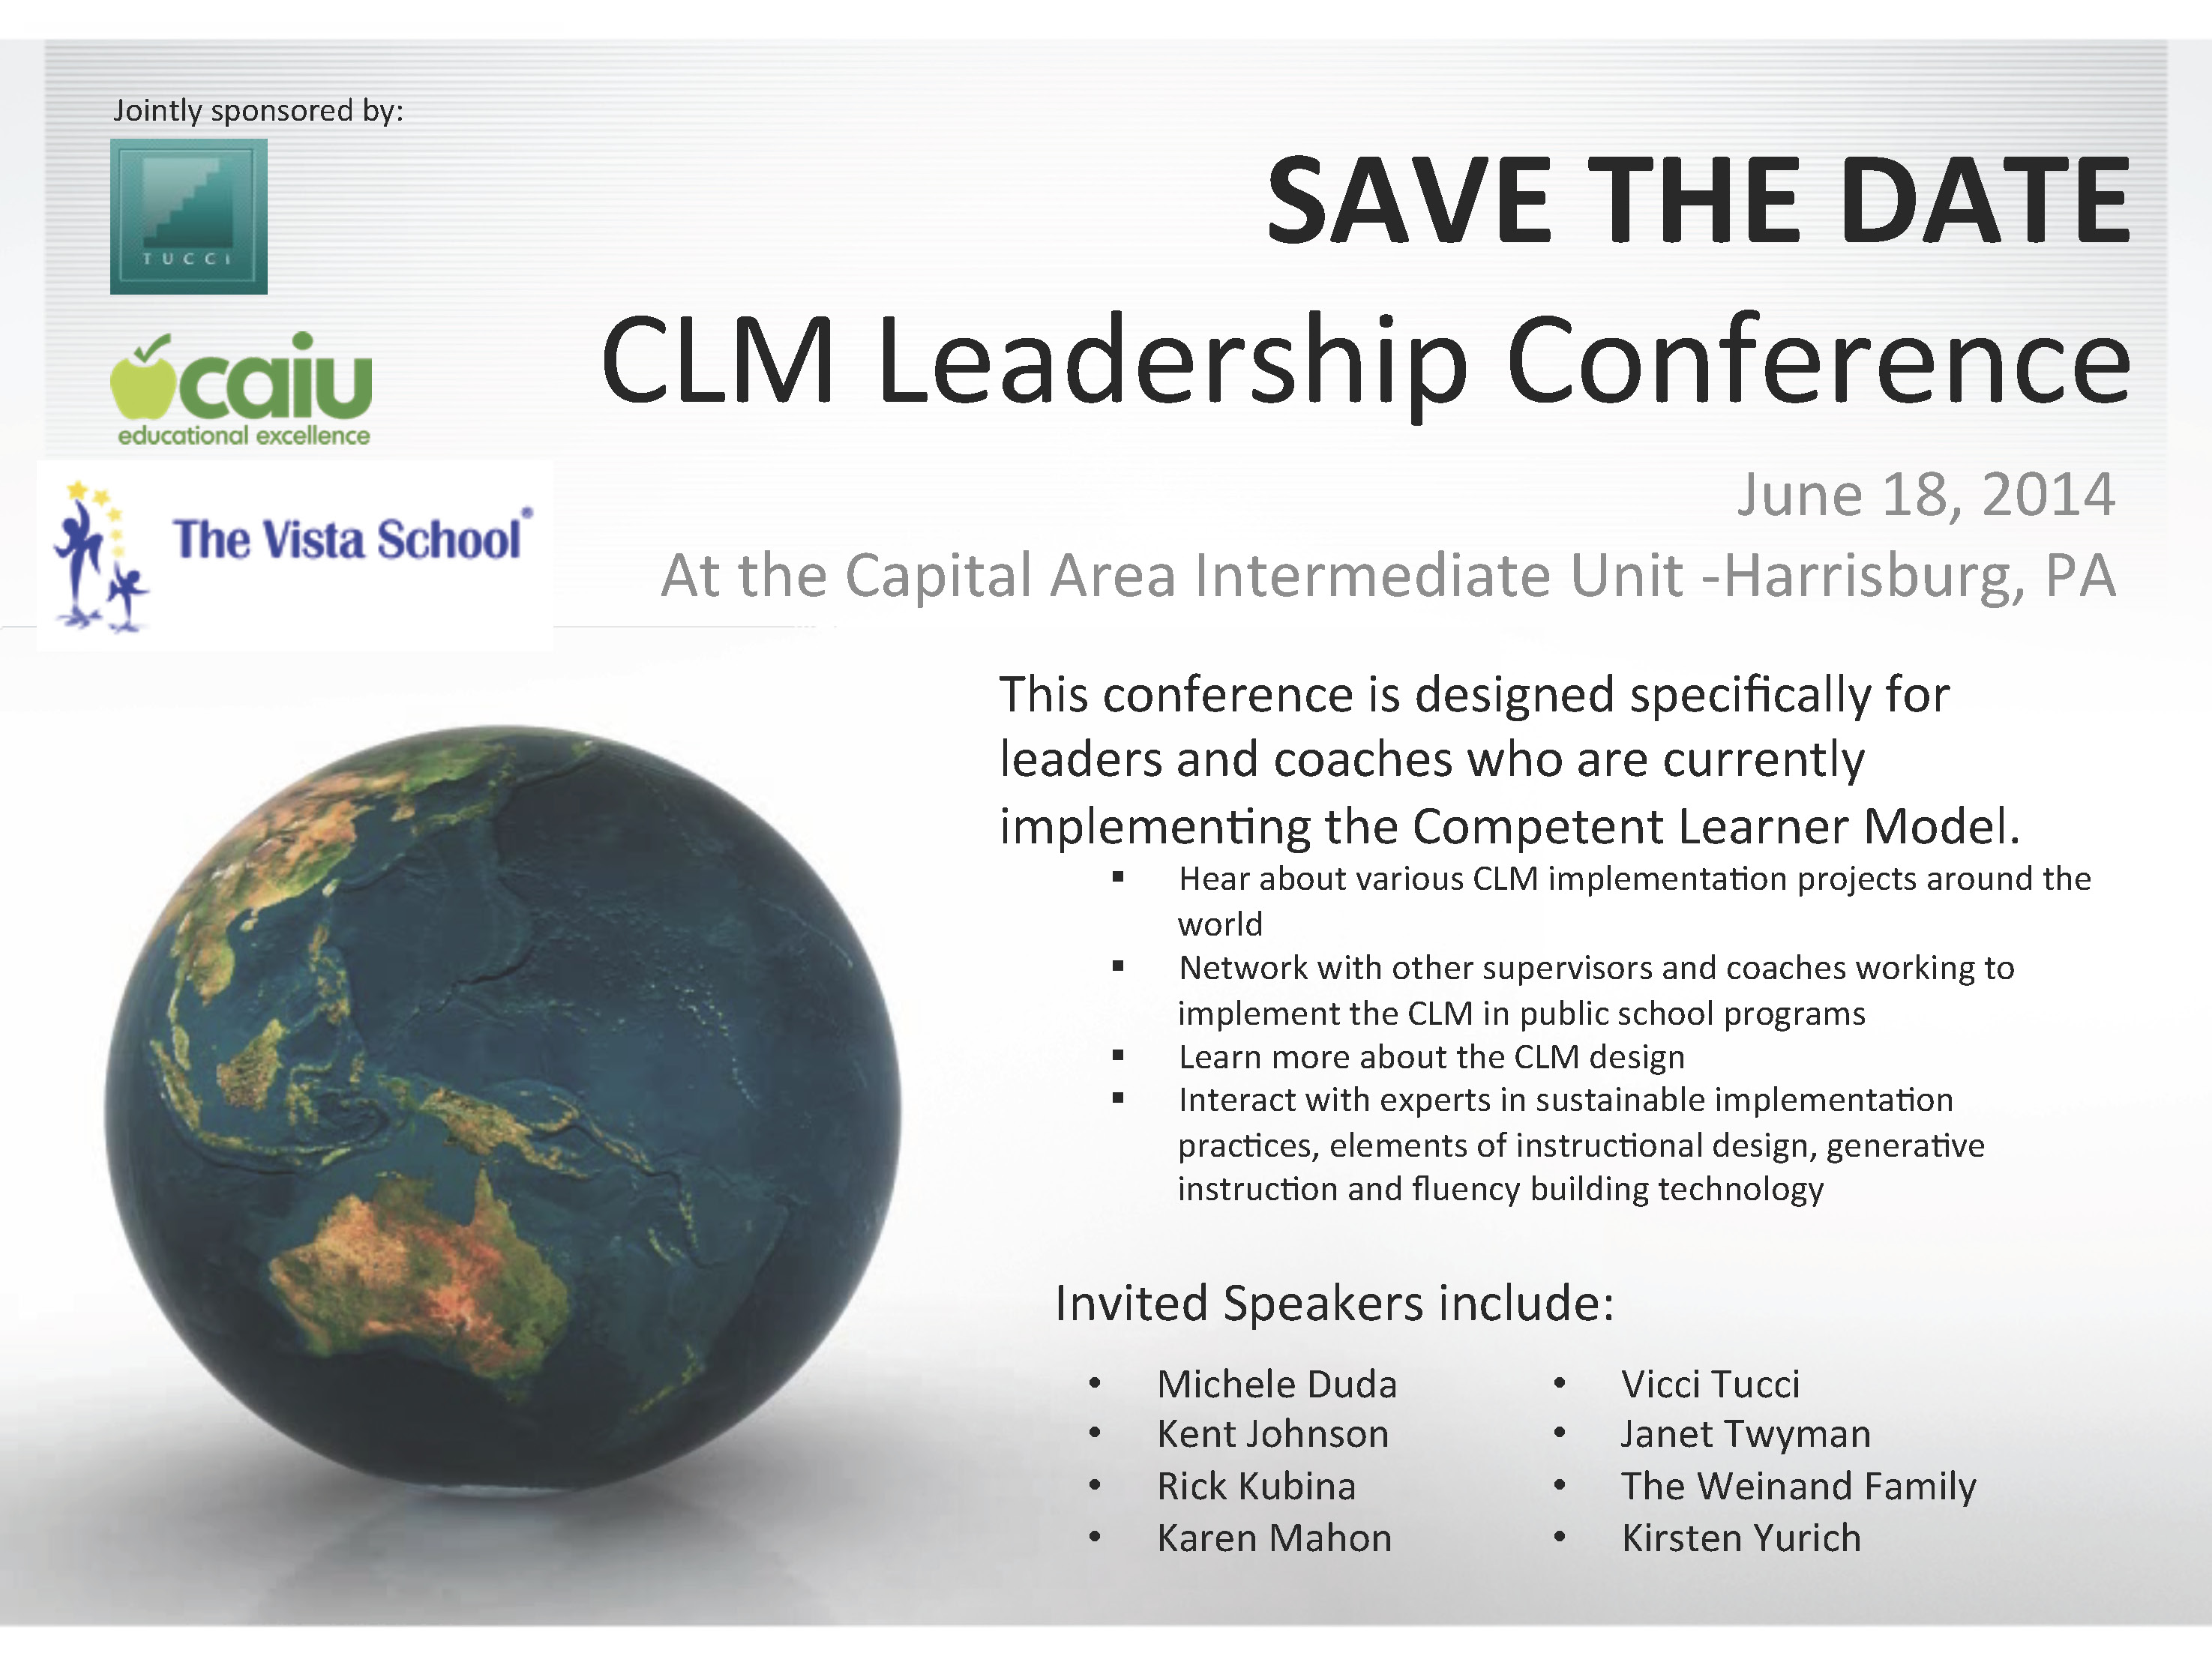 SAVE THE DATE - CLM conference